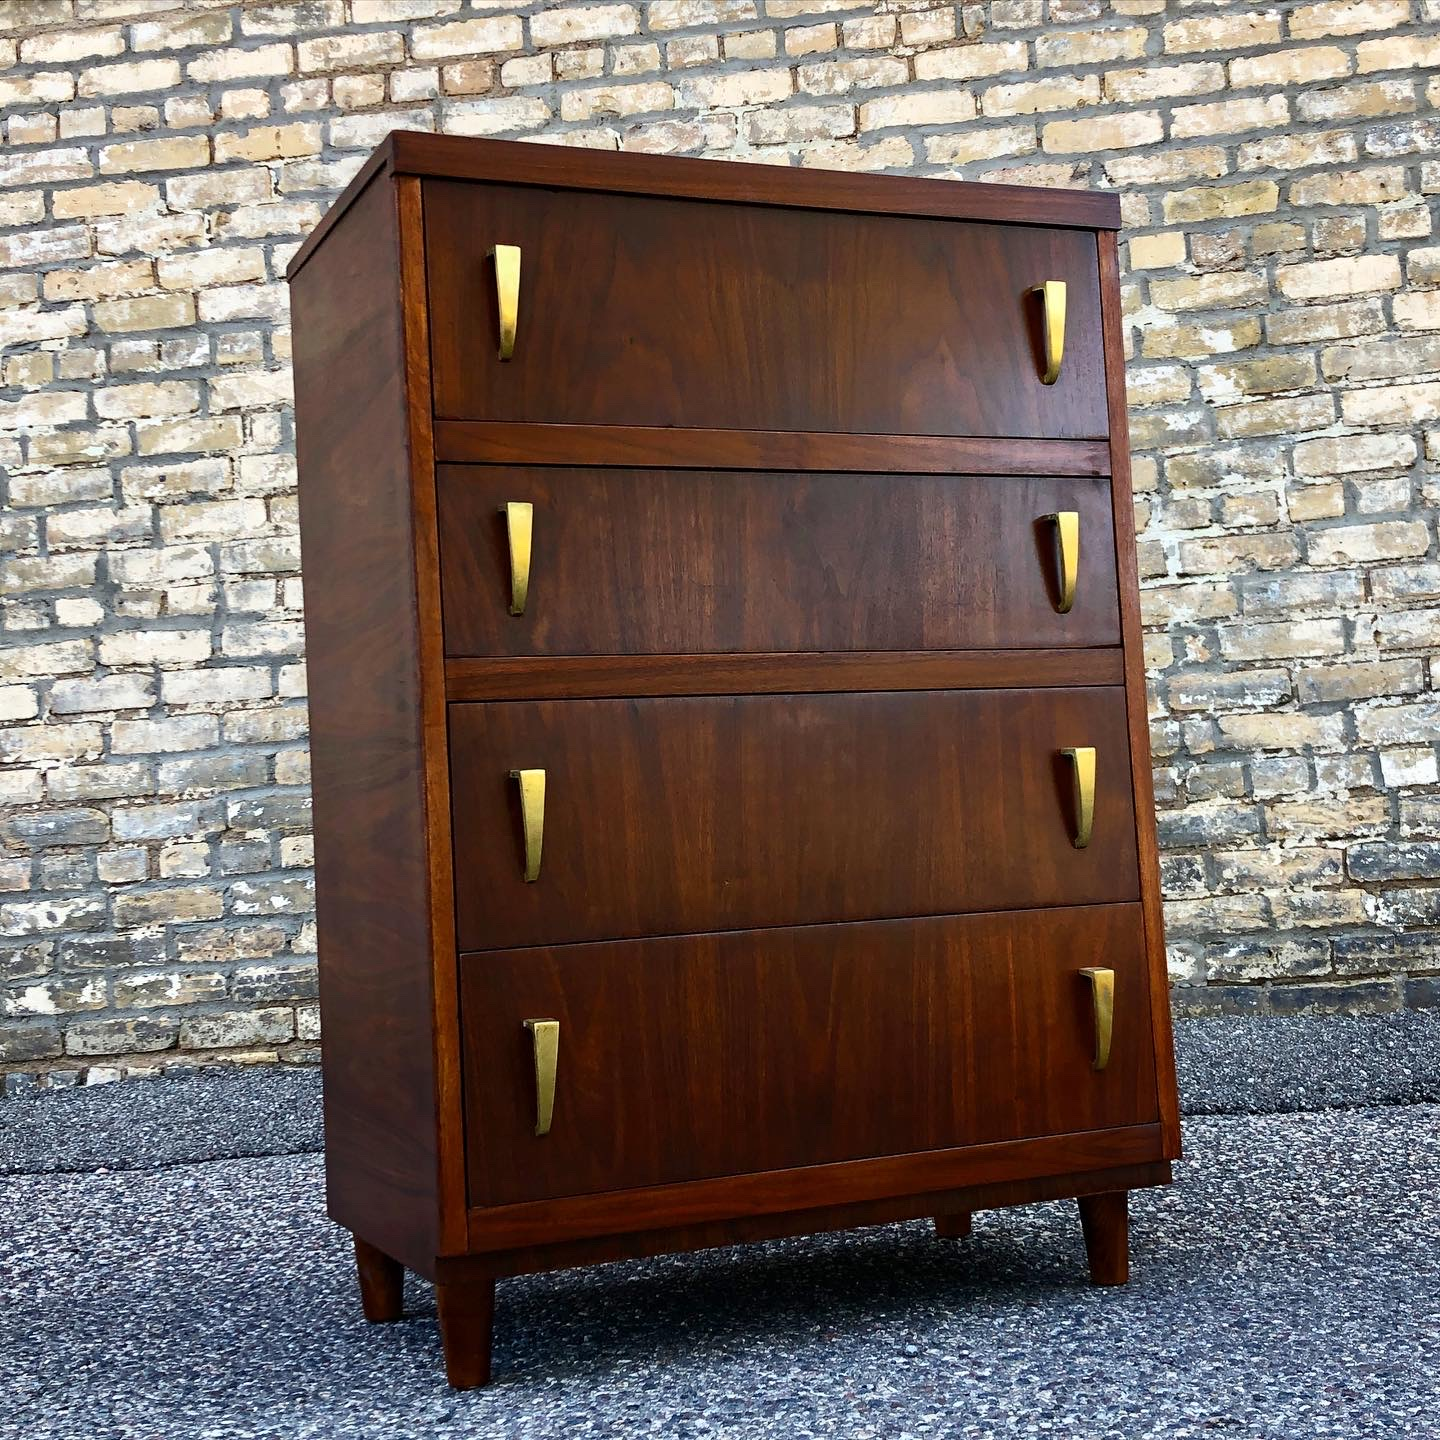 Vintage modern Harmony House chest of drawers